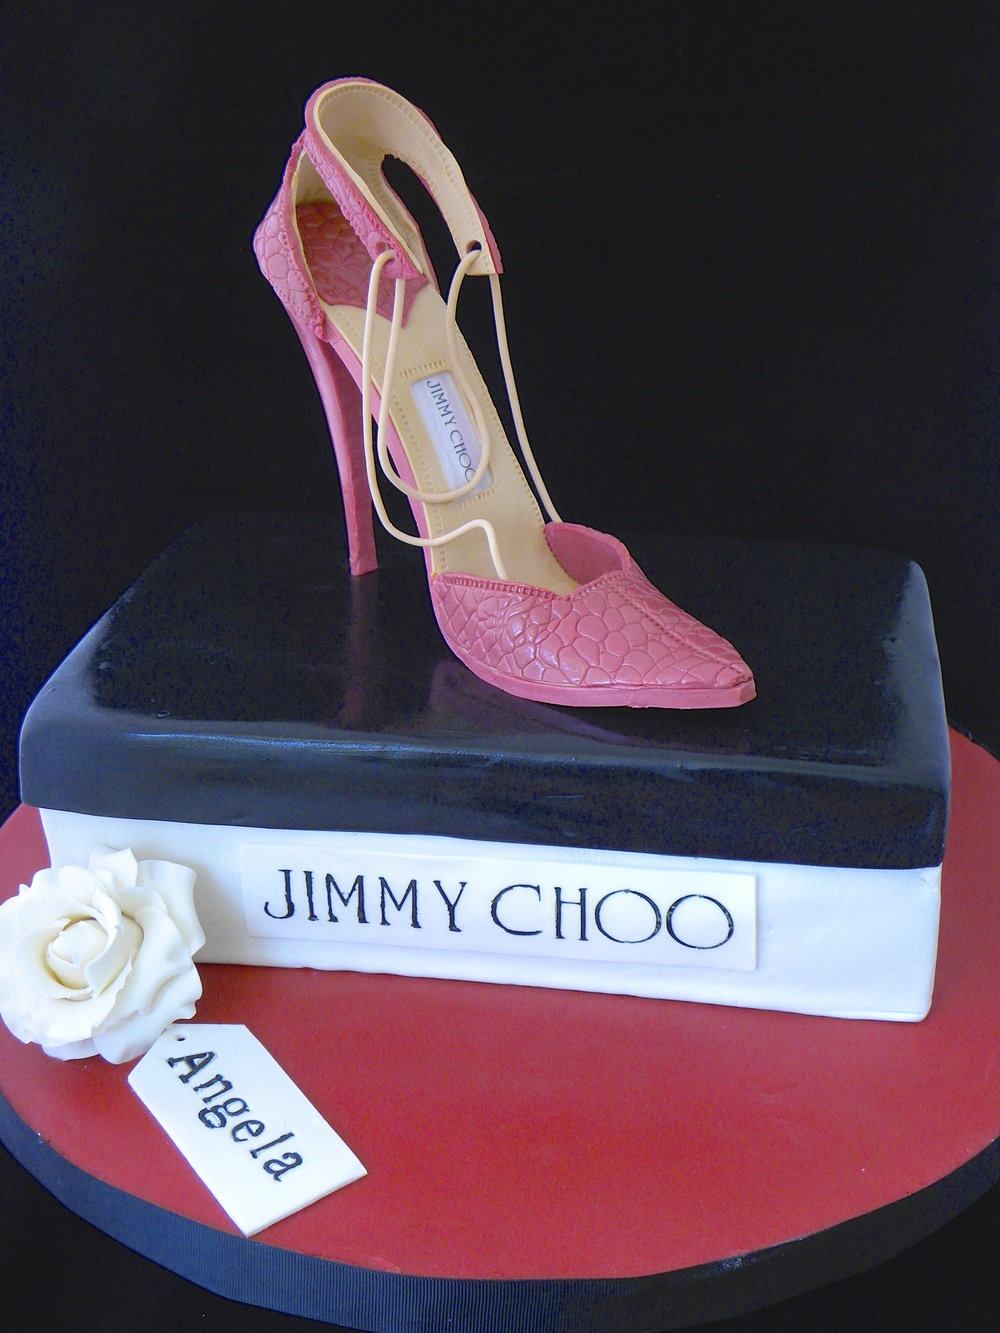 Jimmy Choo Stiletto Cake